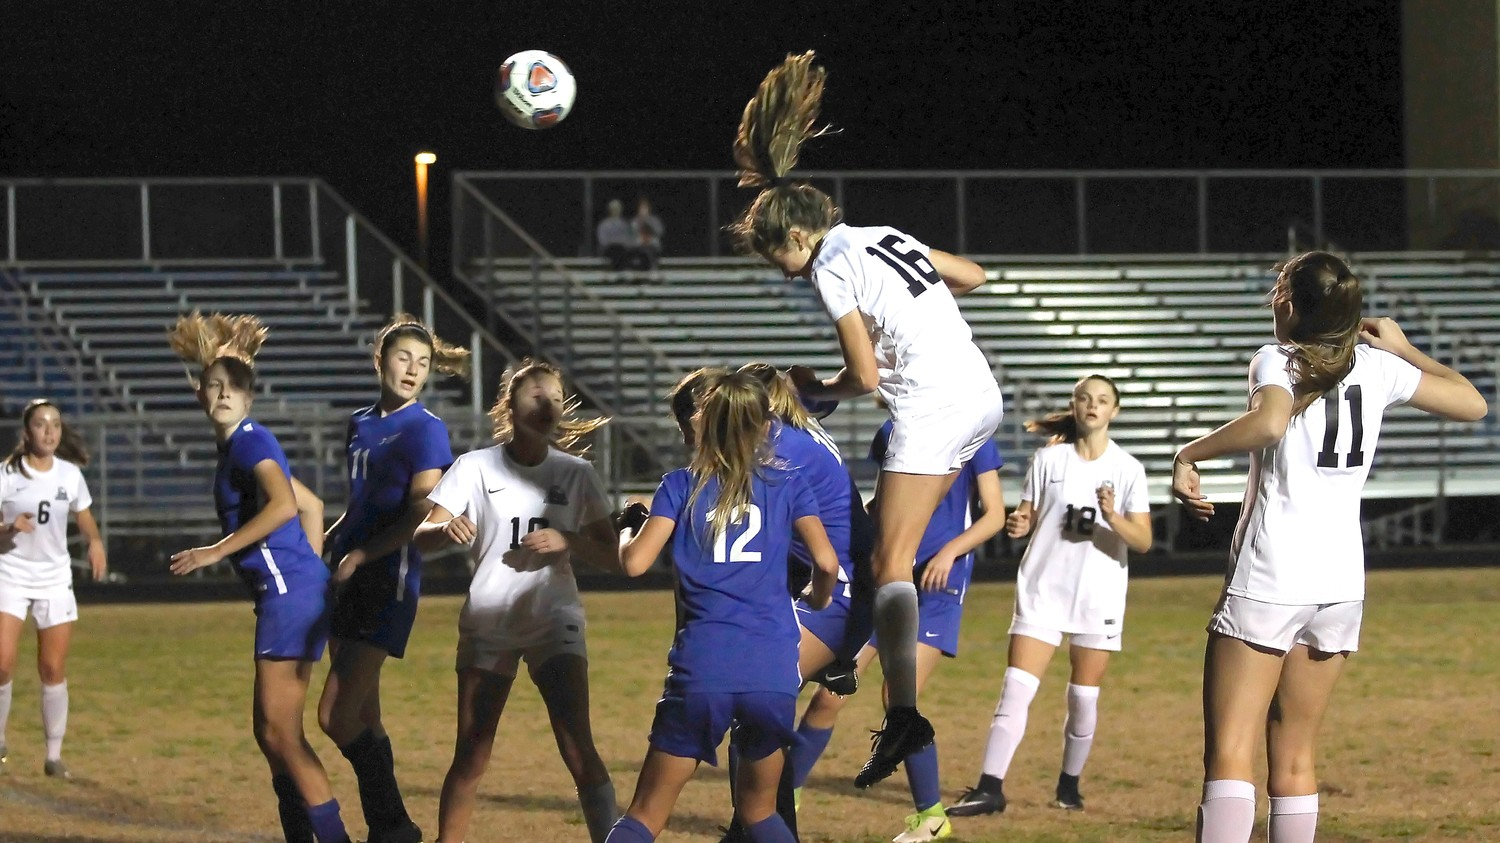 Ponte Vedra's Julia Deal, who scored one of the Sharks' goals, heads the ball toward the Pedro Menendez goal. Tatum Taucher scored the Sharks' other goal.